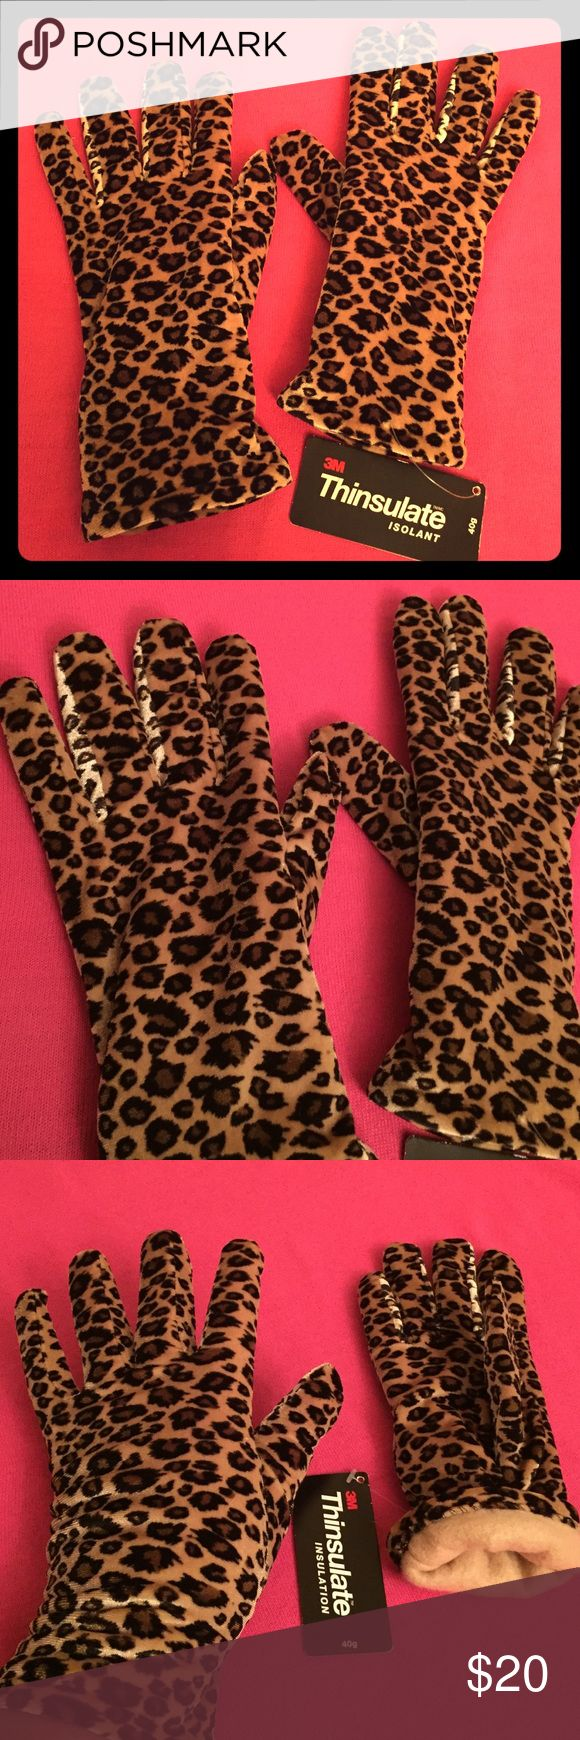 🆕 Animal Print Gloves Cejon Animal Print Gloves. OS. Soft Fabric Inside & Outside. Thinsulate Isolation: 30 Gram. 90% Polyester/10% Spandex. Tan Fleece Lining. Elasticized Back. Gloves come right below your wrists. Excellent Condition. Brand New. No Trades. Cejon Accessories Gloves & Mittens